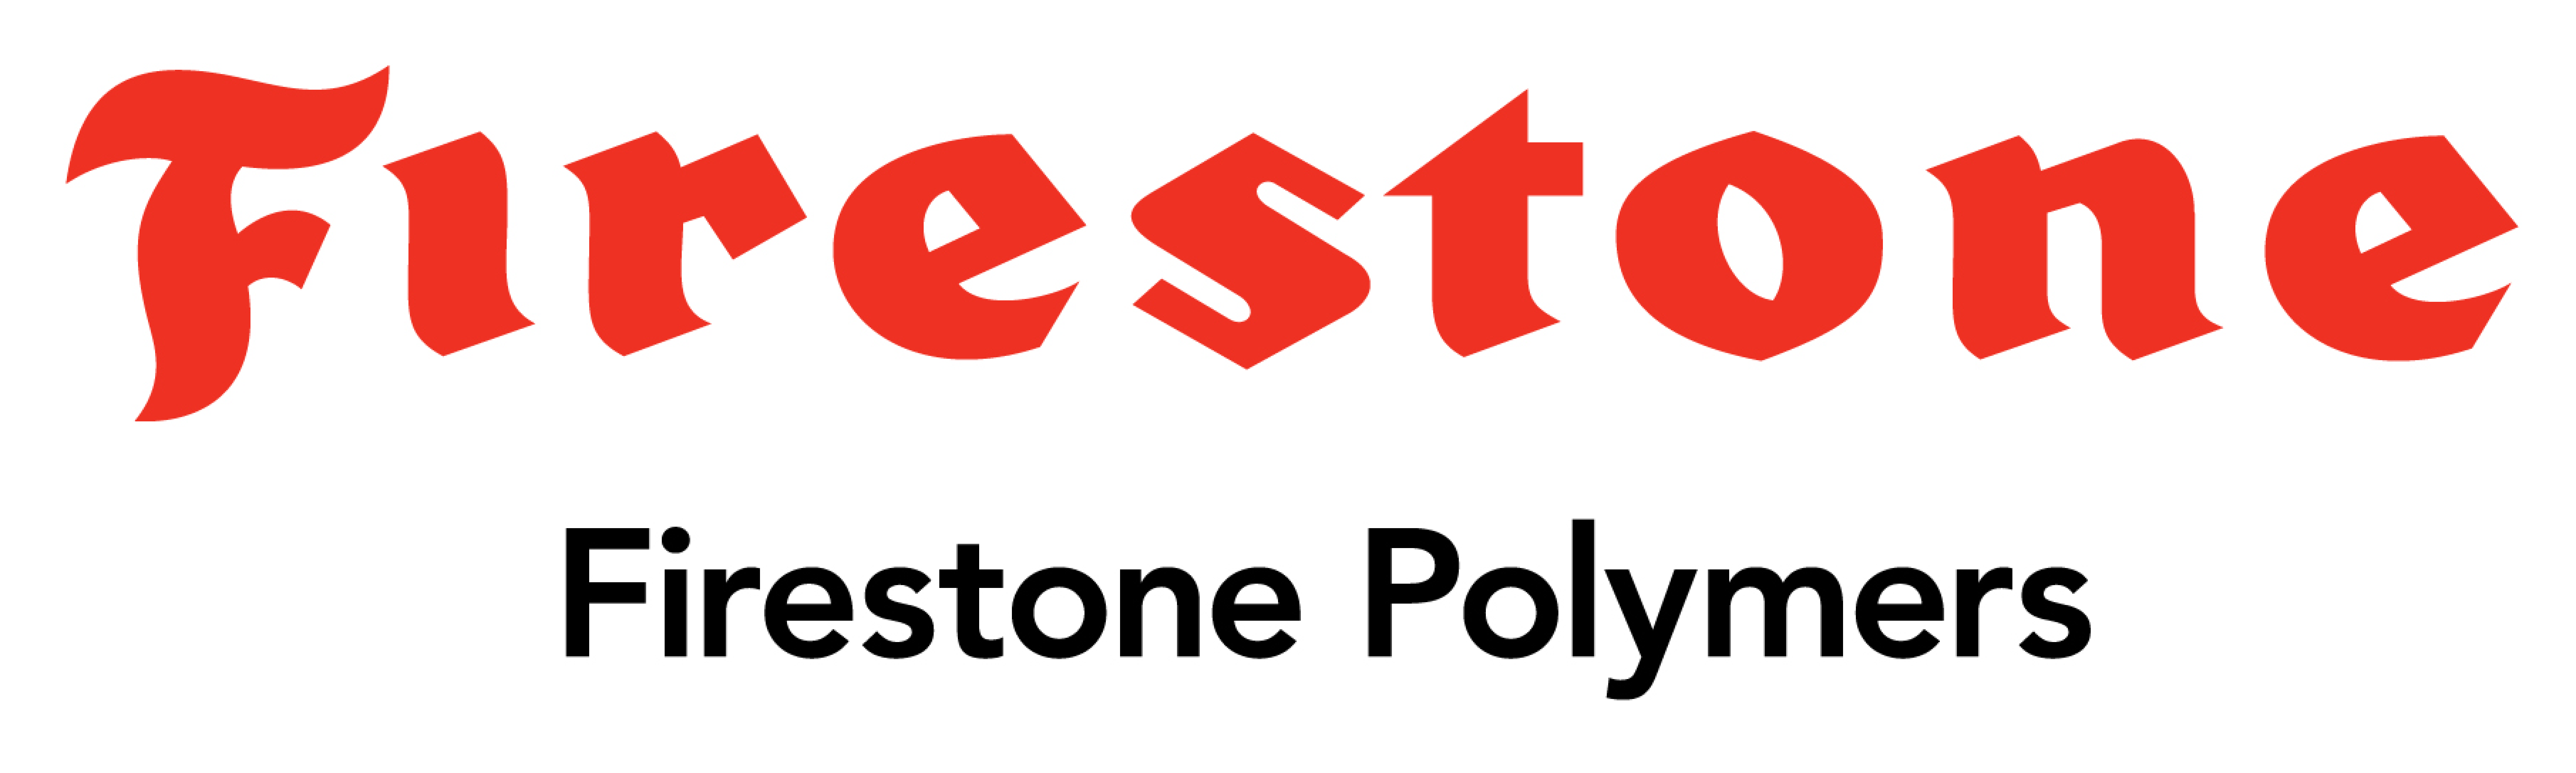 Firestone Polymers website